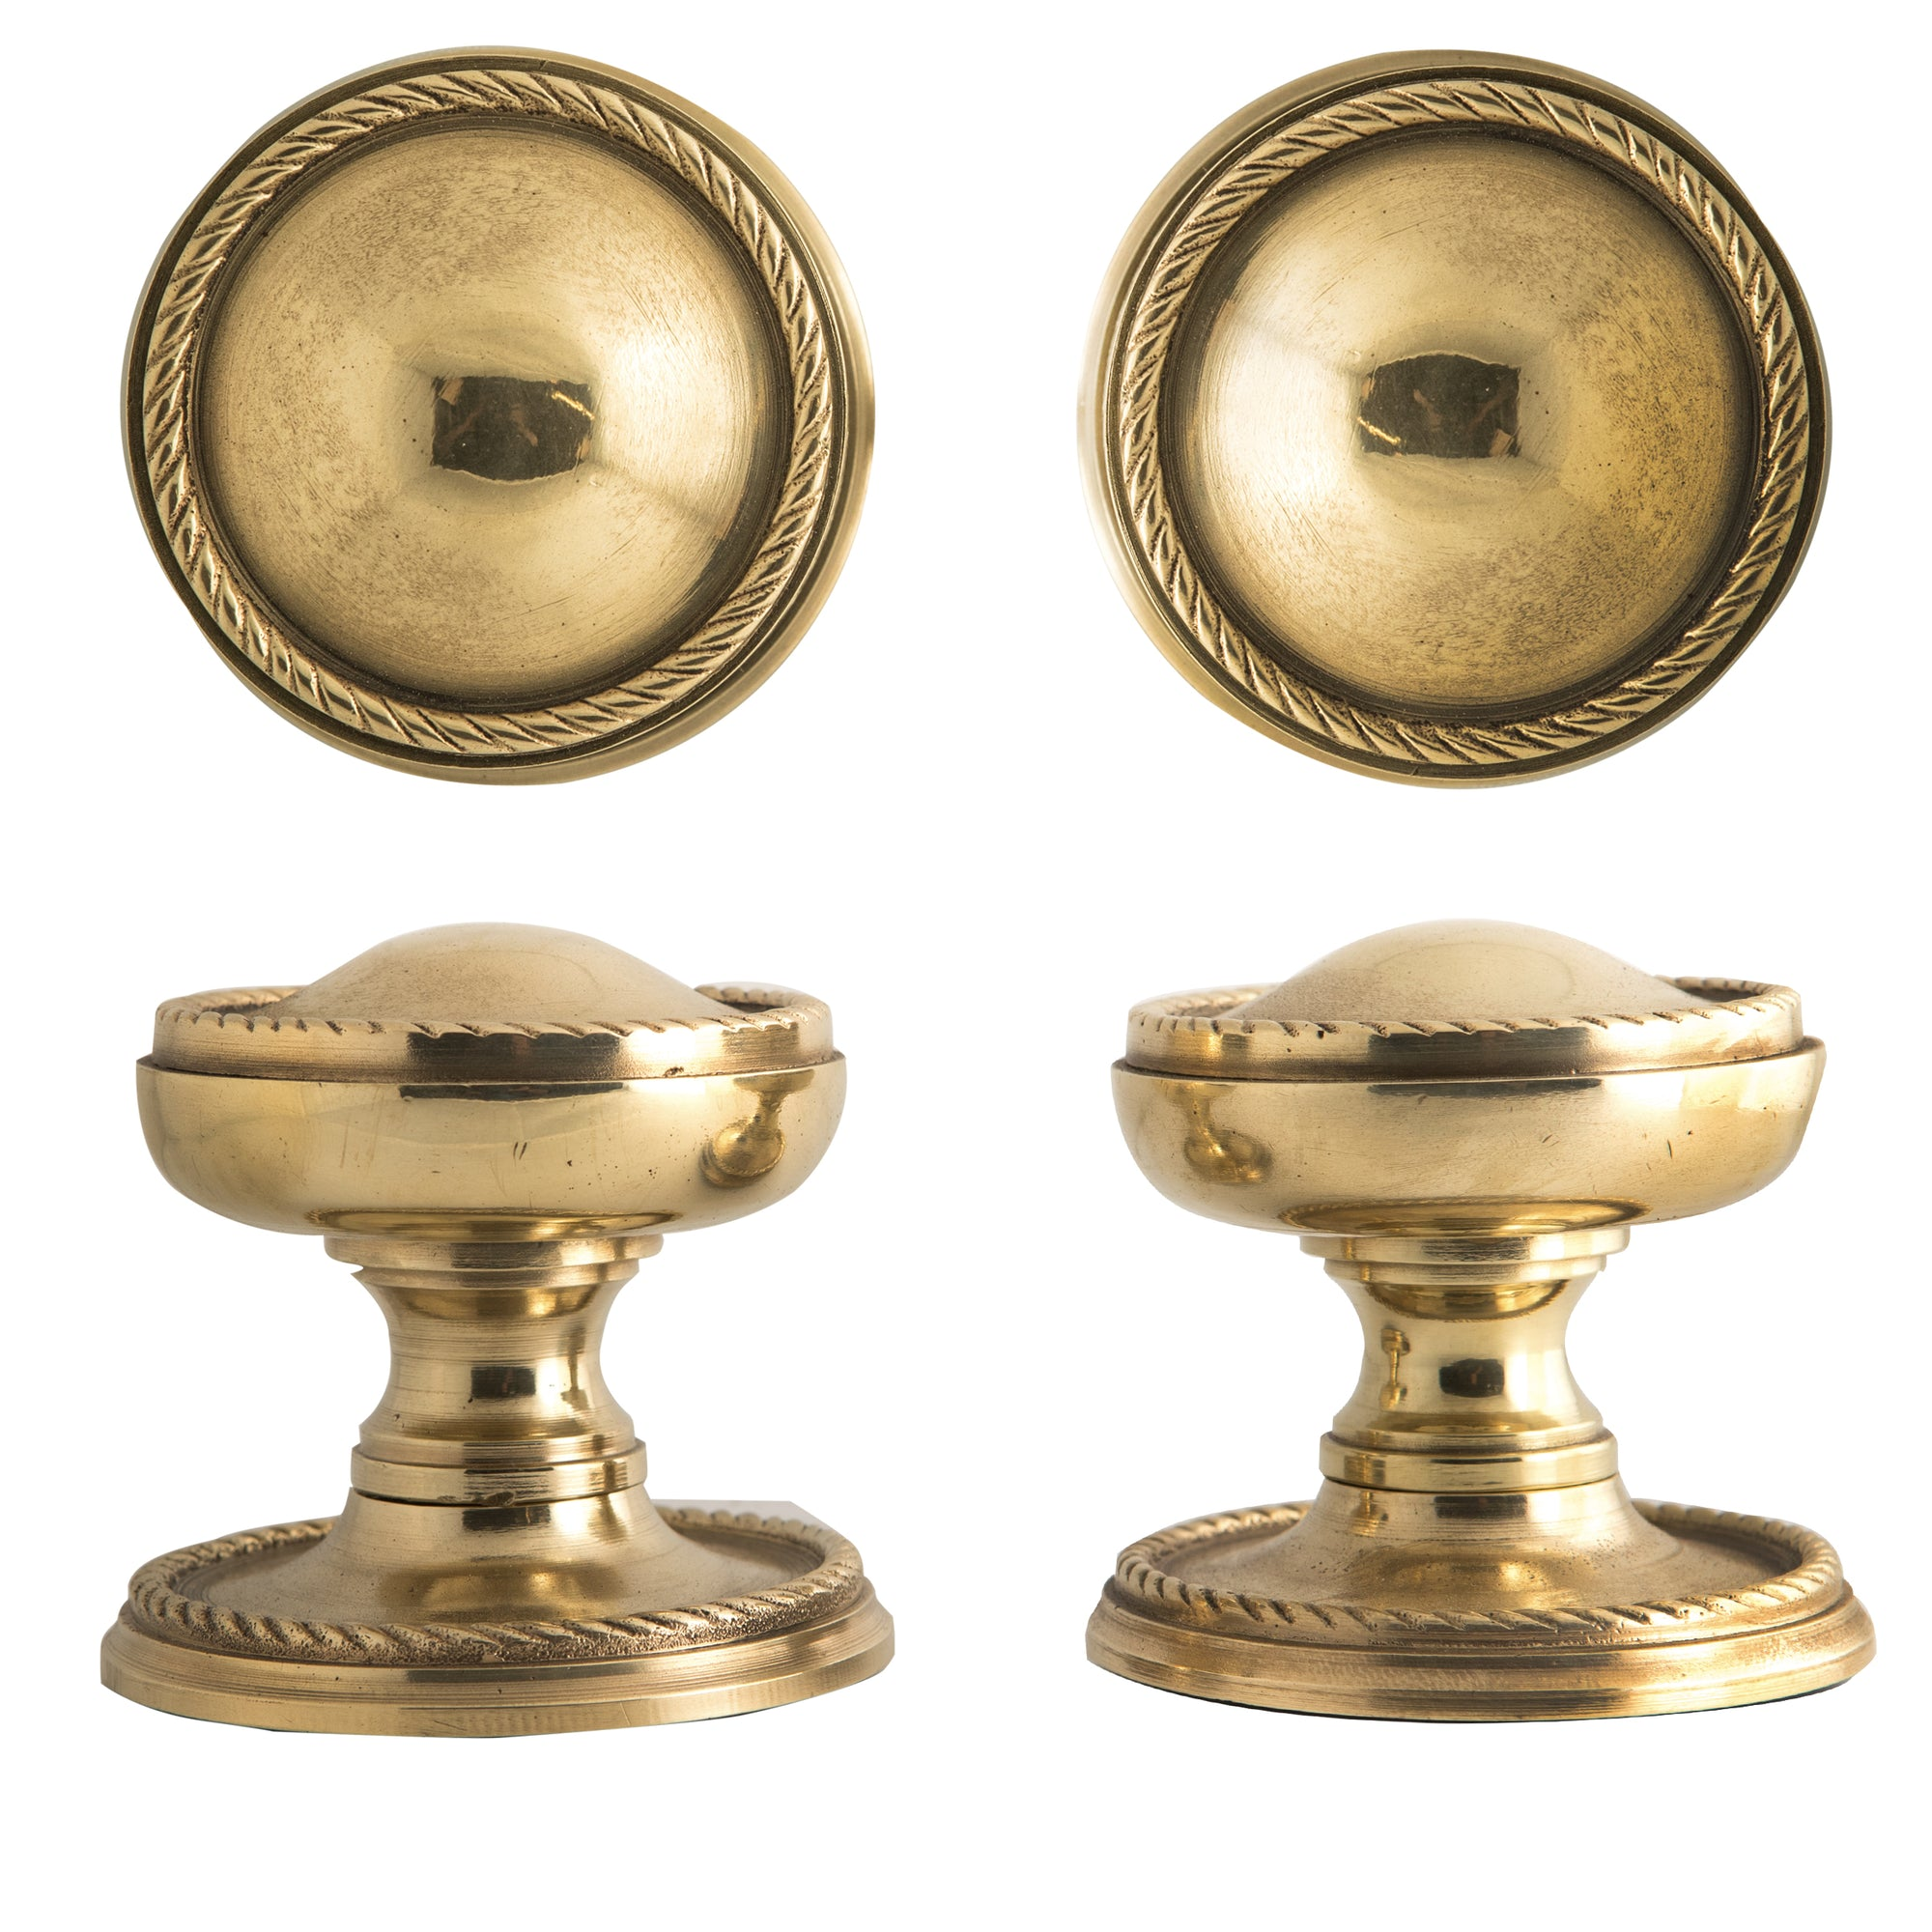 Pair of Solid Brass Pull Handles